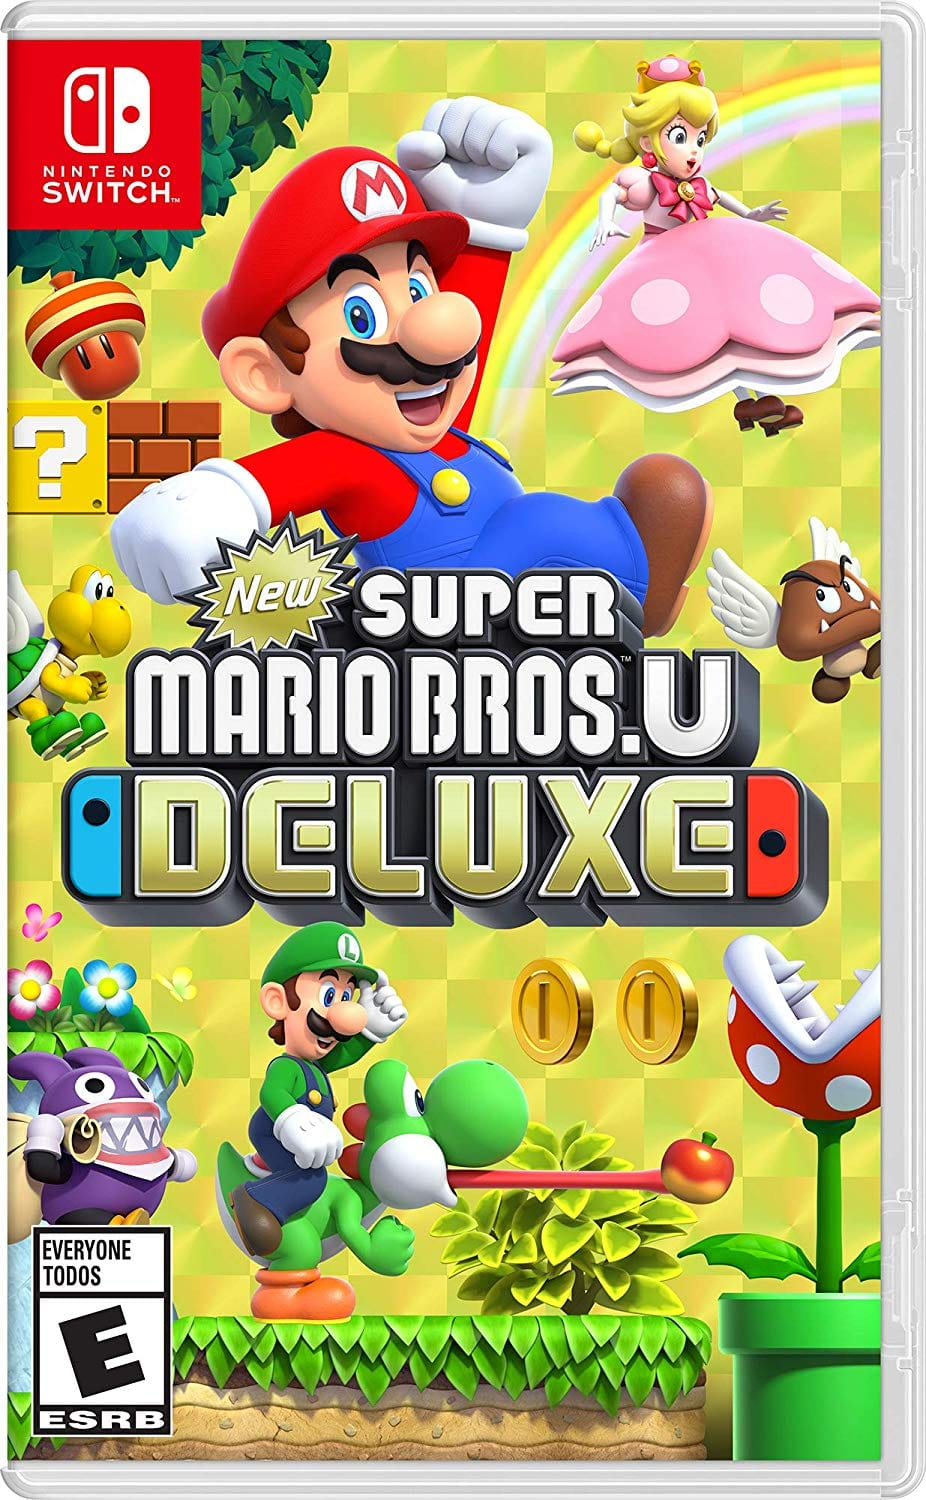 New Super Mario Bros. U Deluxe - Nintendo Switch Daily Steals via Facebook Marketplace $39.99 Region Free or Digital at Amazon for $39.99